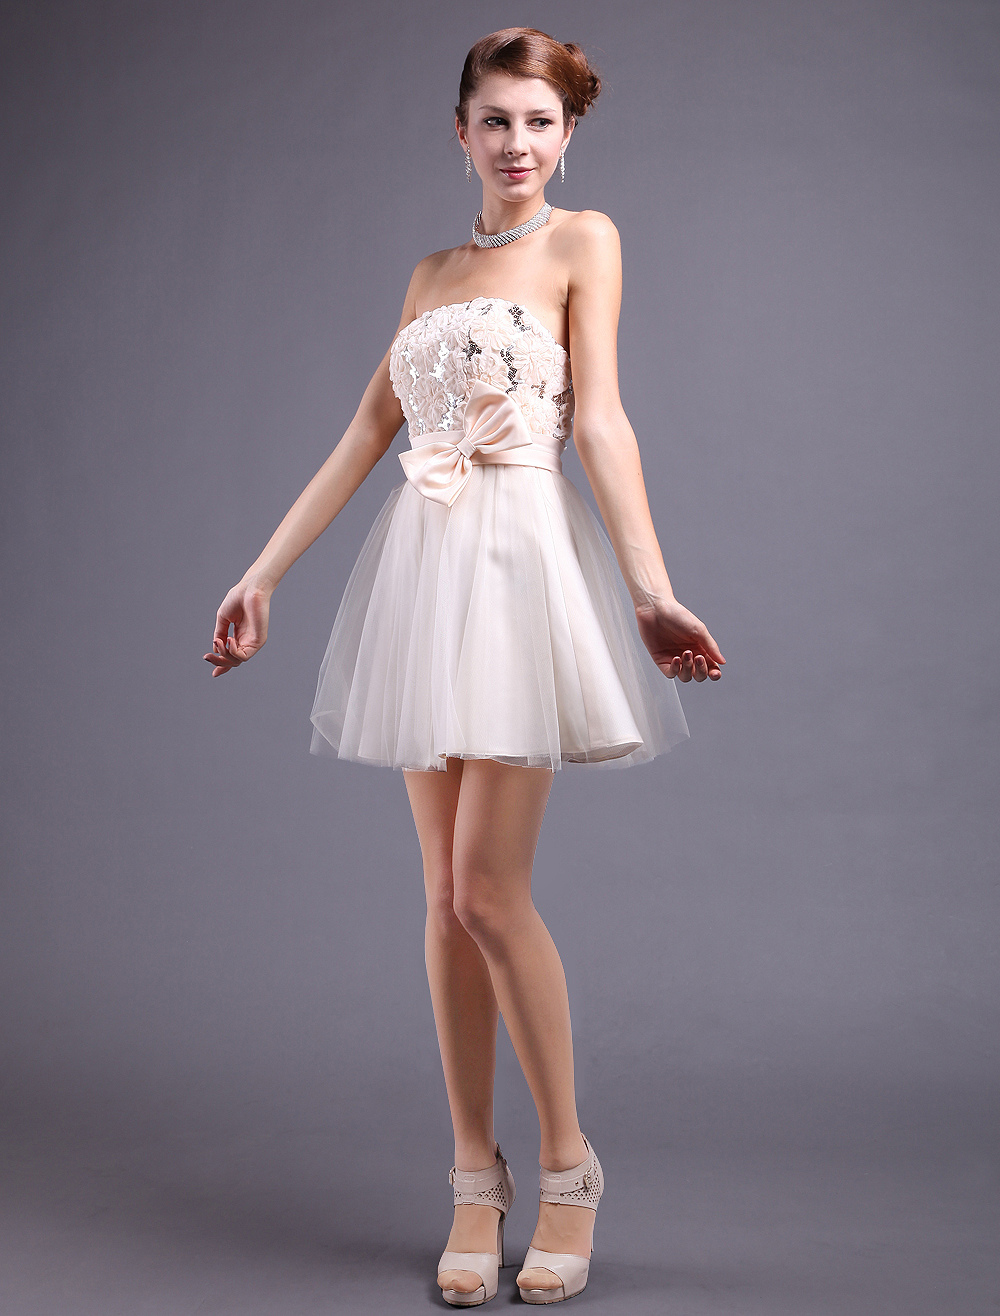 Champagne Sequined Cloth Strapless Prom Dress (Wedding Cheap Party Dress) photo